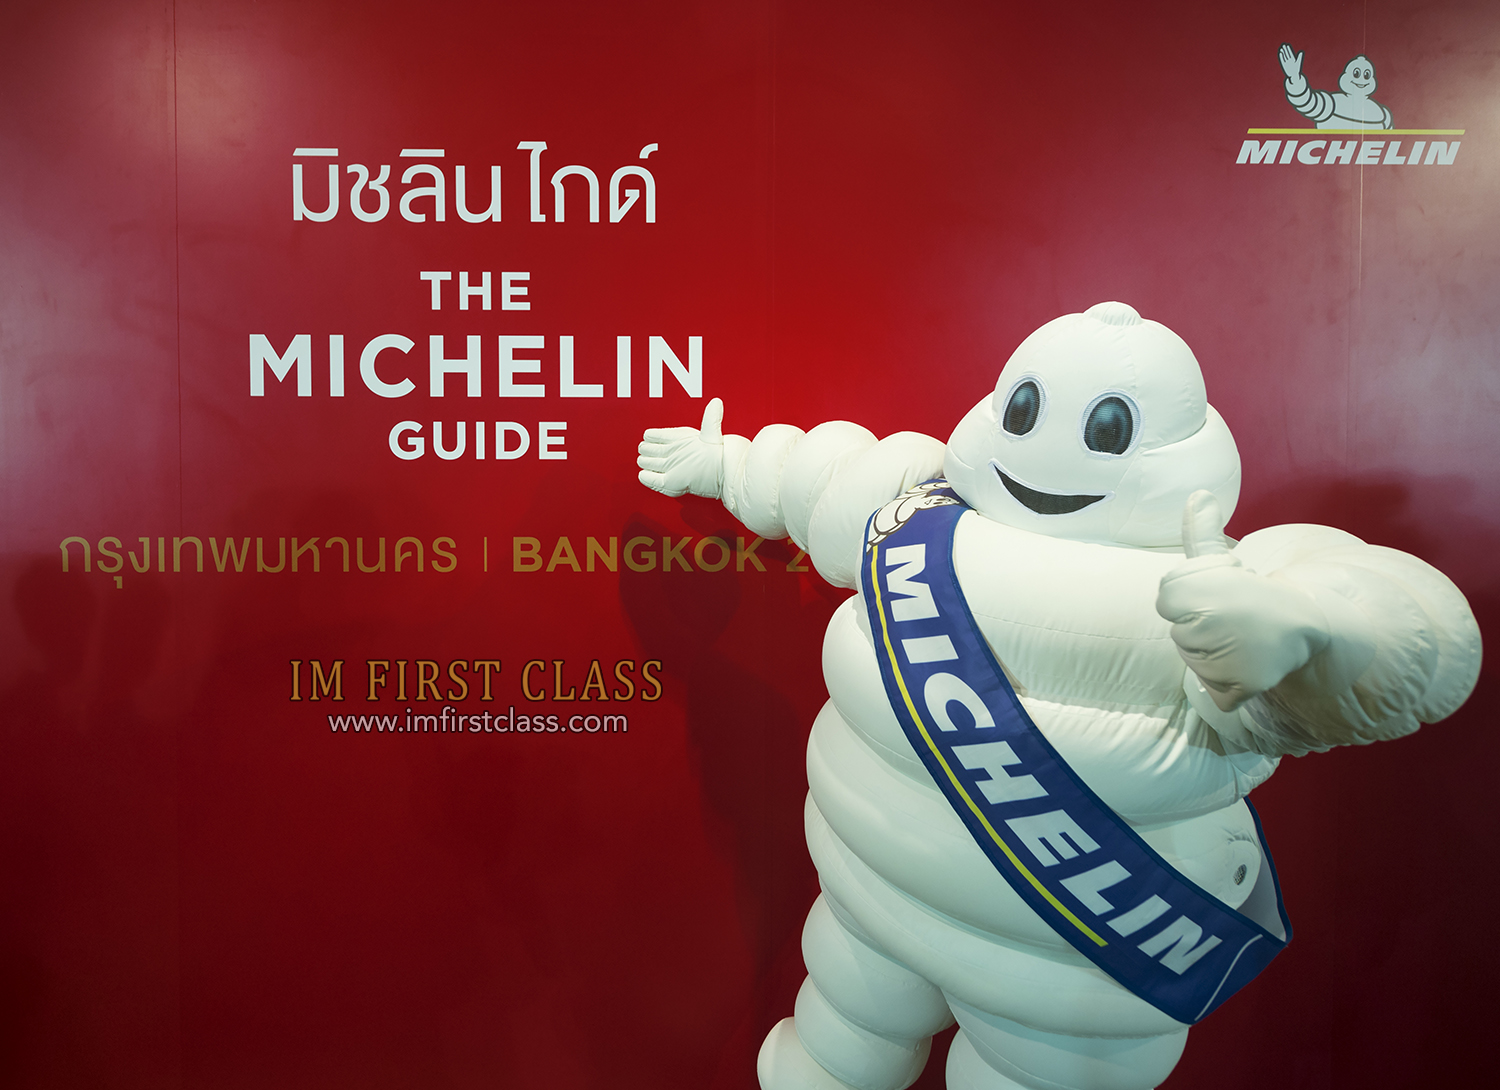 The Michelin Guide Thailand